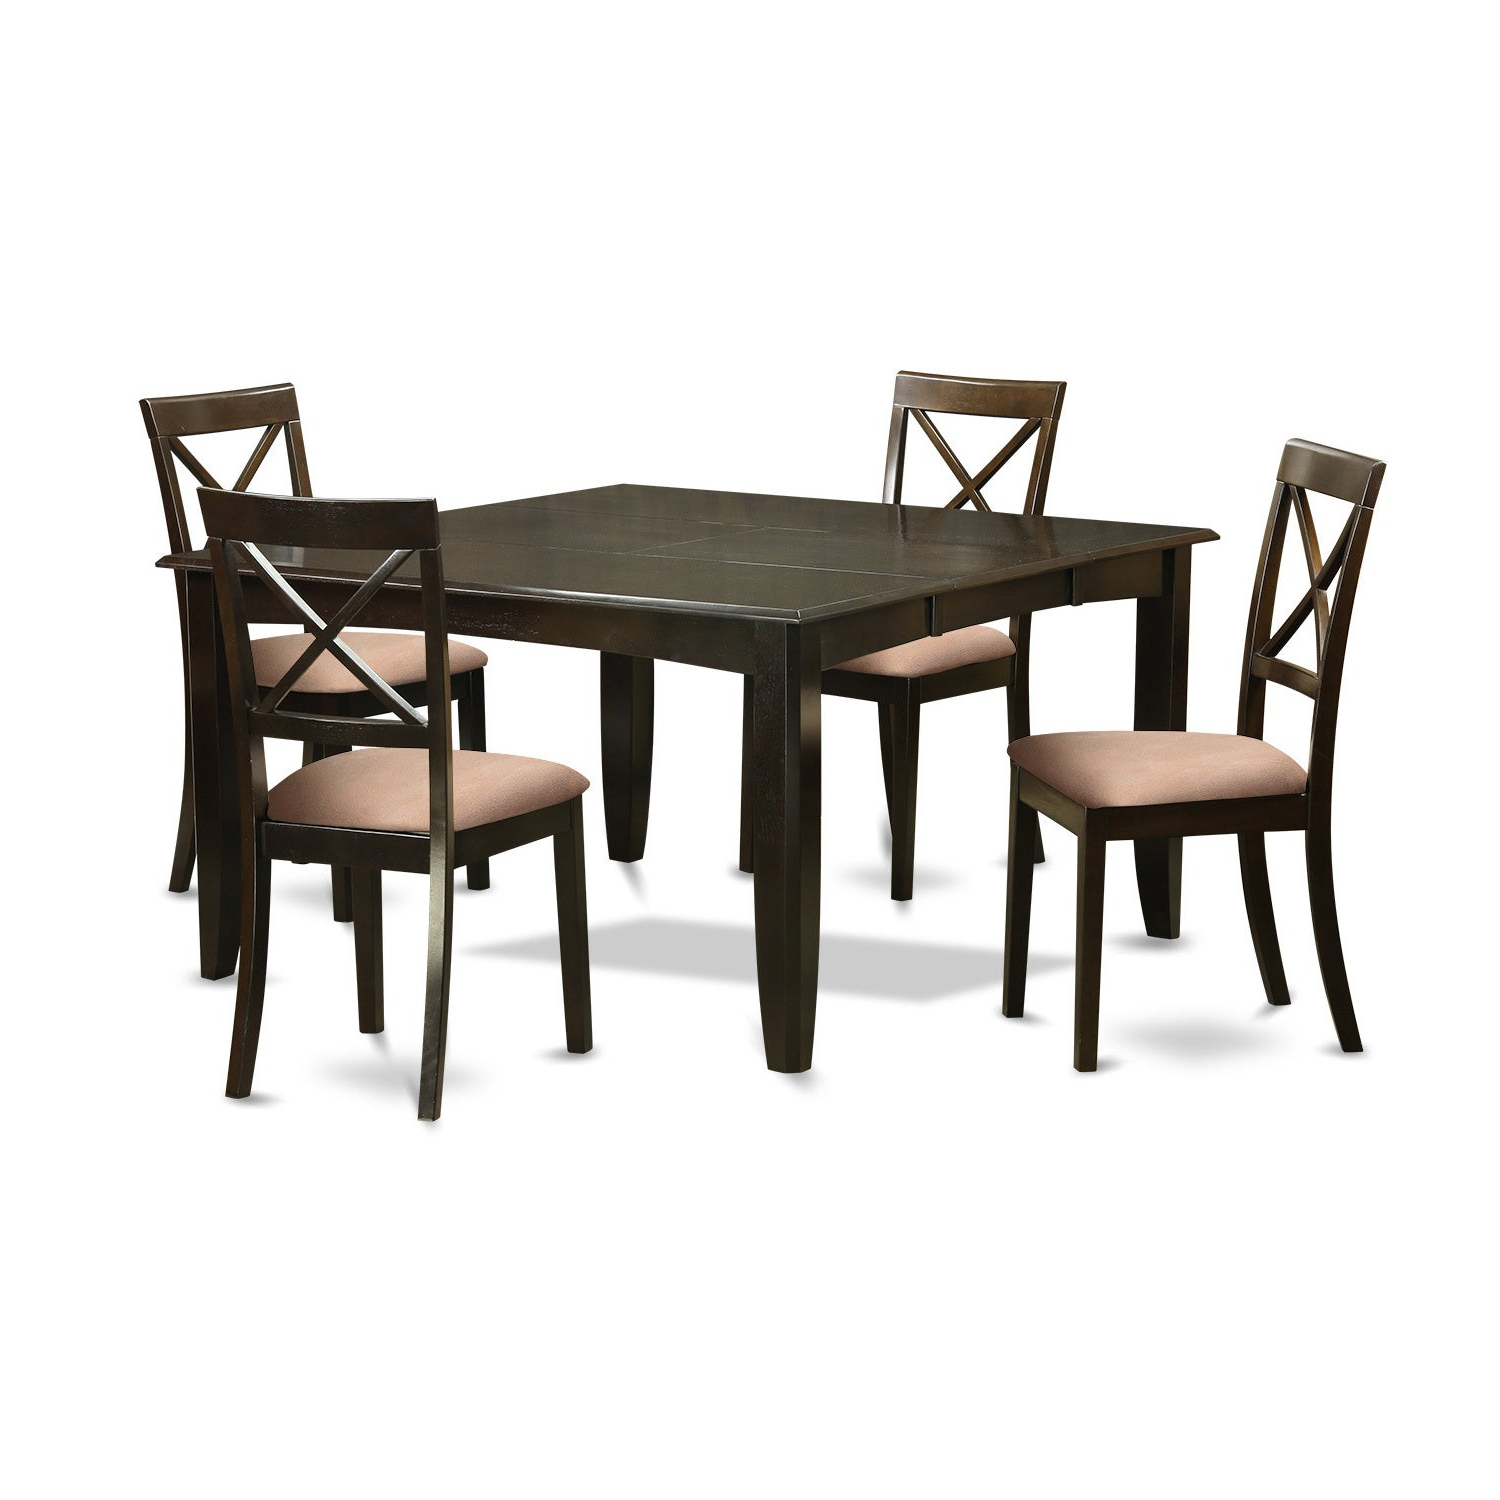 Buy 9 Piece Sets Kitchen & Dining Room Sets Online At Overstock Pertaining To Well Known Springfield 3 Piece Dining Sets (View 9 of 25)